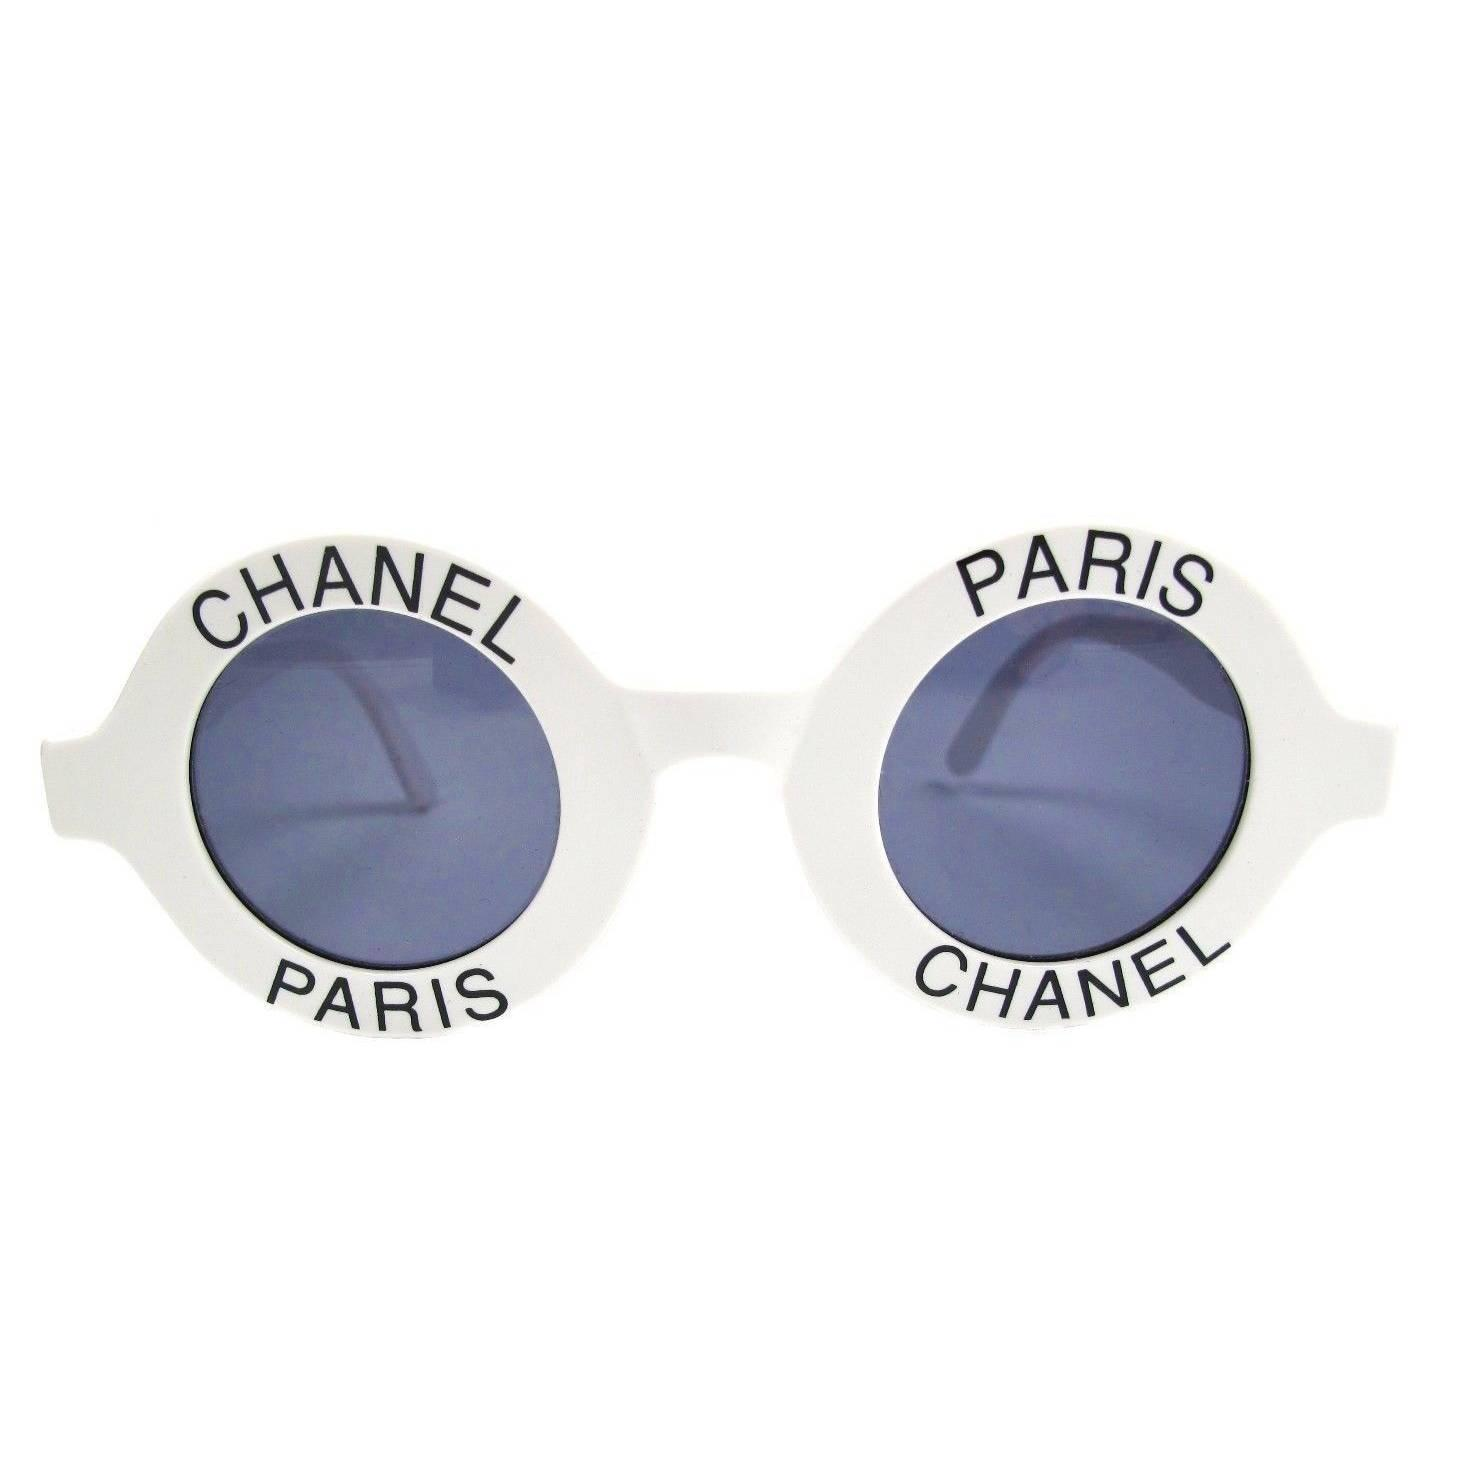 d10ffb7565 Chanel Paris Circle Glasses - Bitterroot Public Library